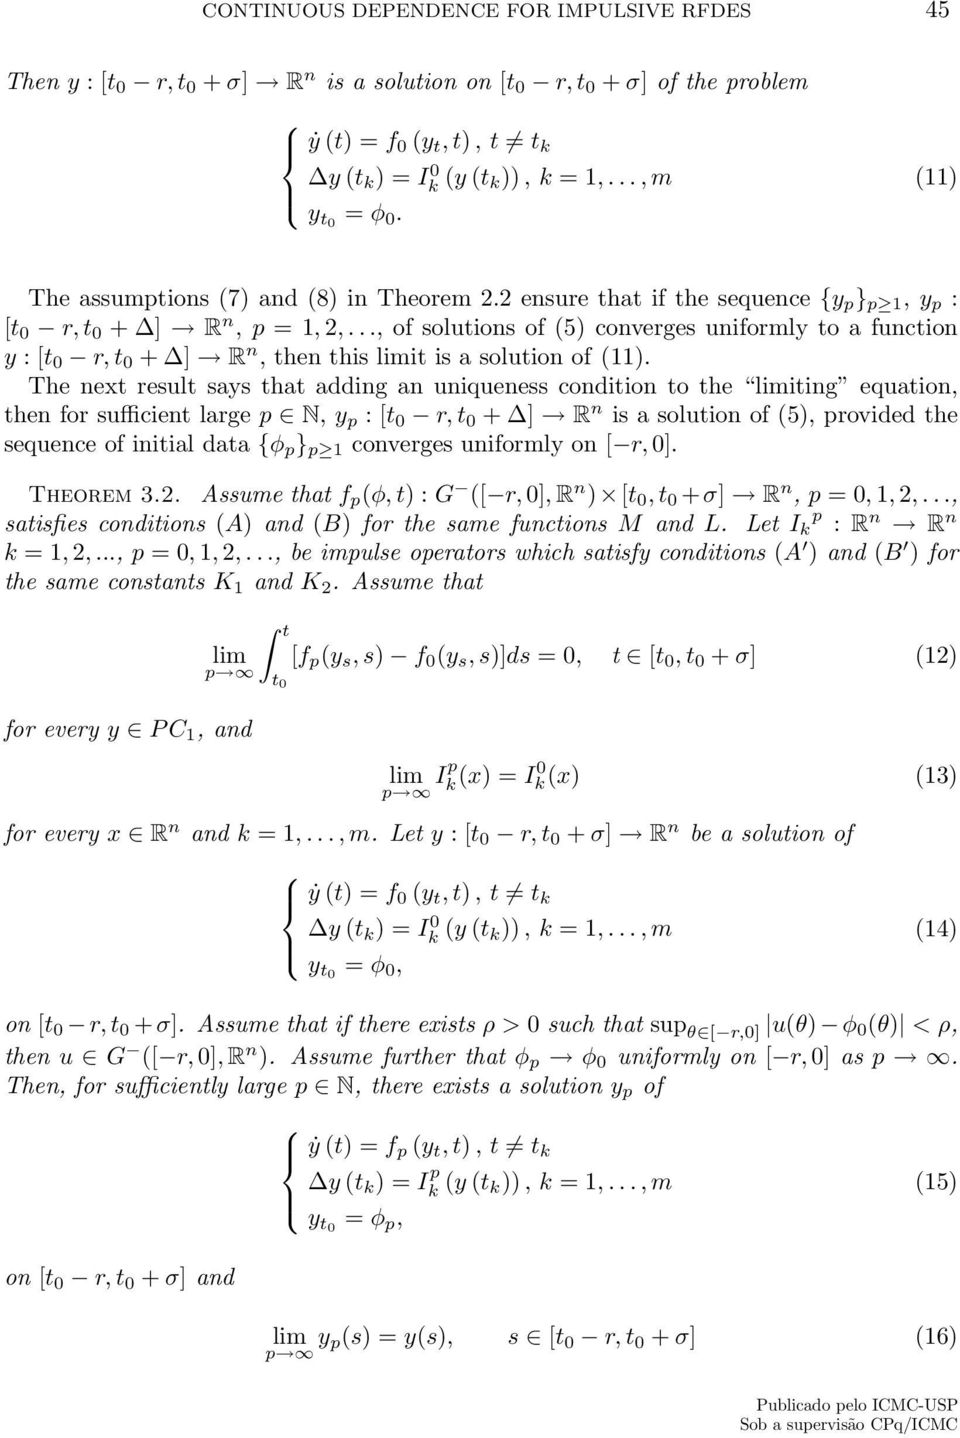 .., of solutions of (5) converges uniformly to a function y : [ r, + ] R n, then this limit is a solution of (11).